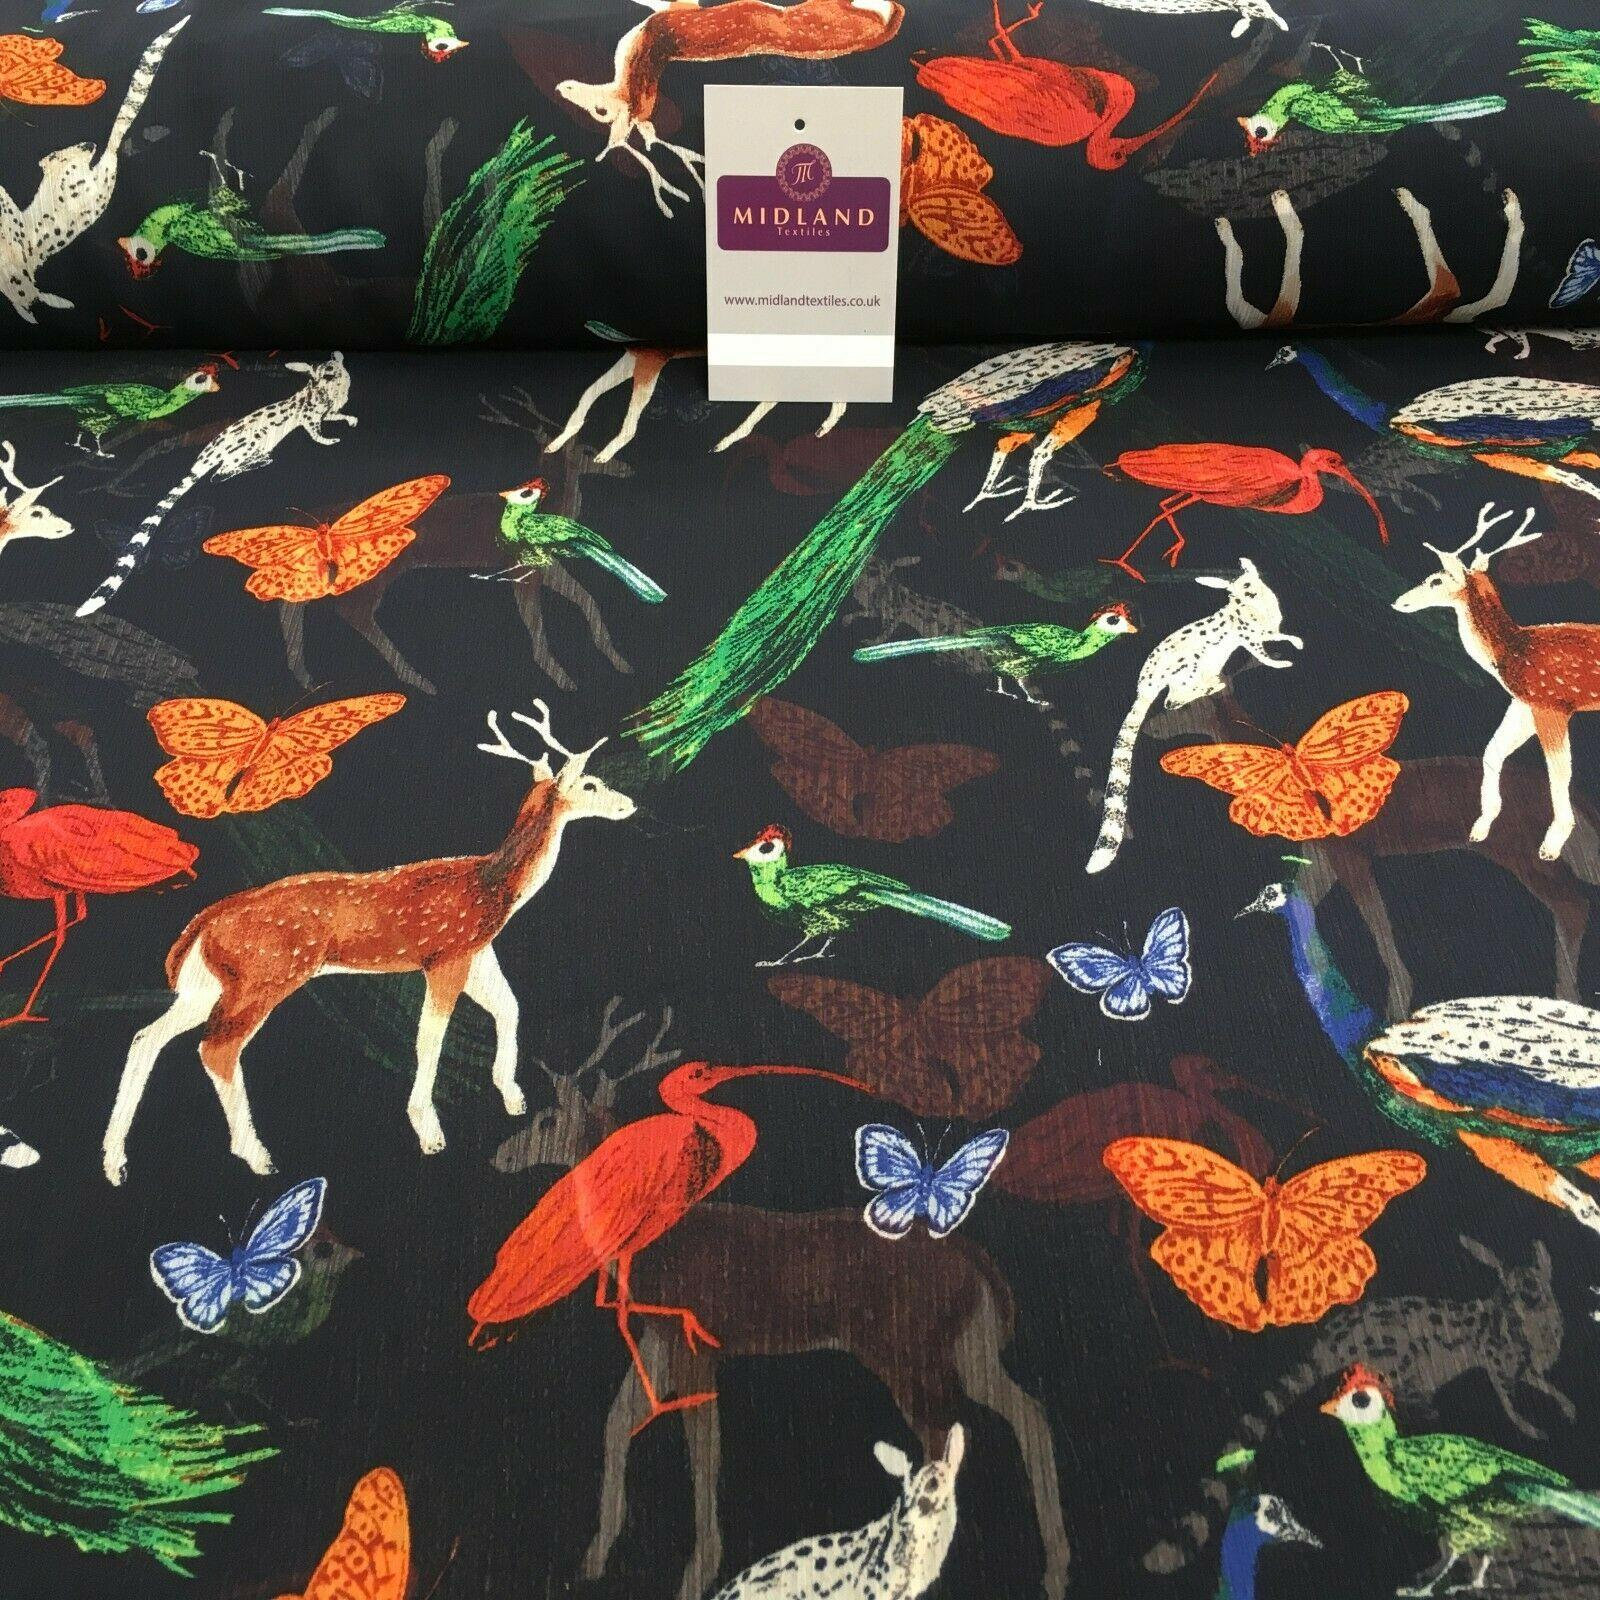 Navy Wildlife Printed High street Chiffon Fabric 150 cm Wide MK1084-10